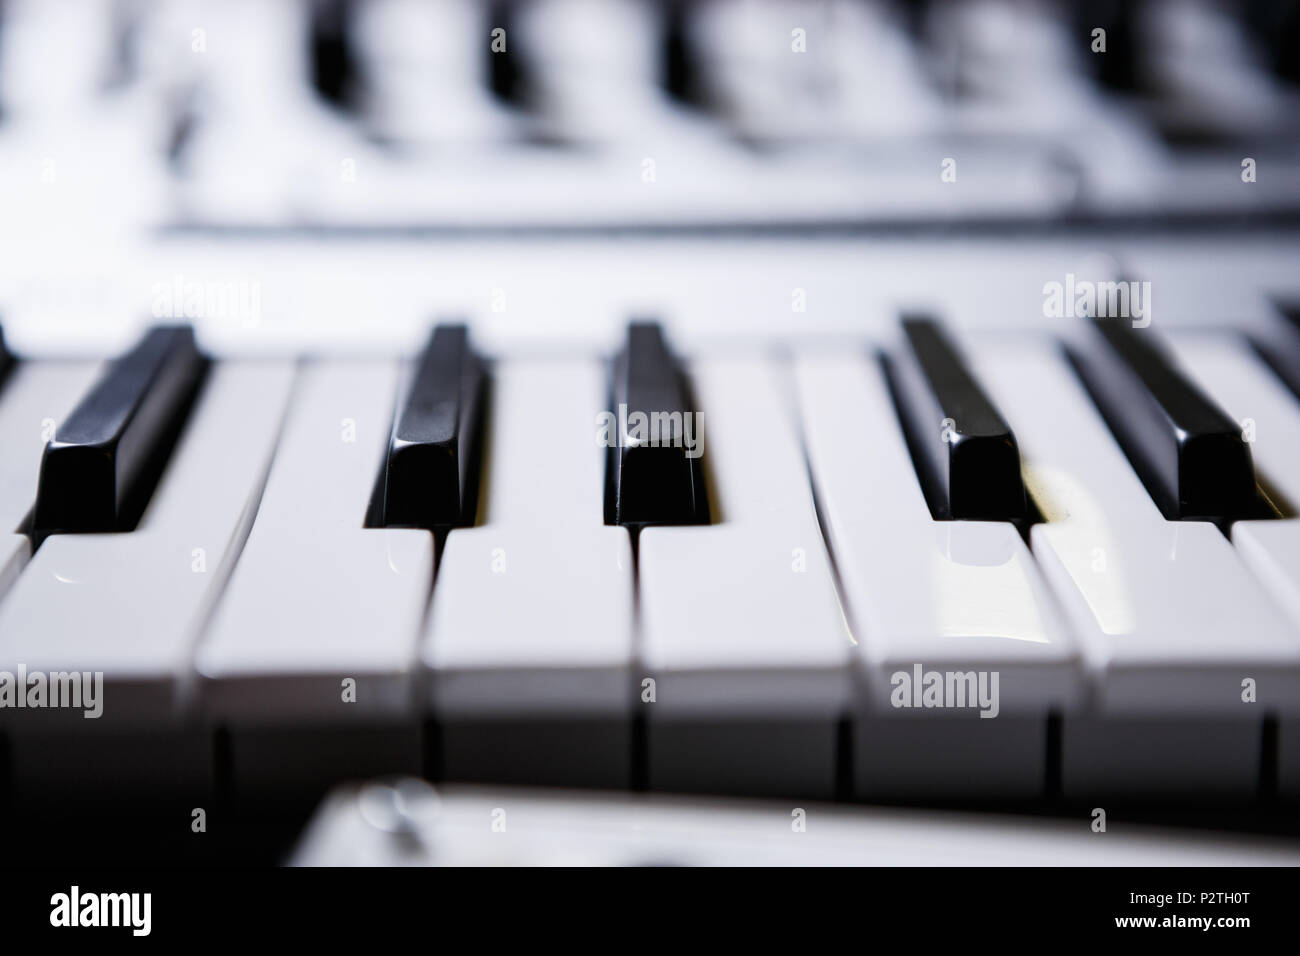 Synthesizer black and white piano keys.Professional electronic midi keyboard.Audio equipment for music production.Sound recording studio device for mu - Stock Image